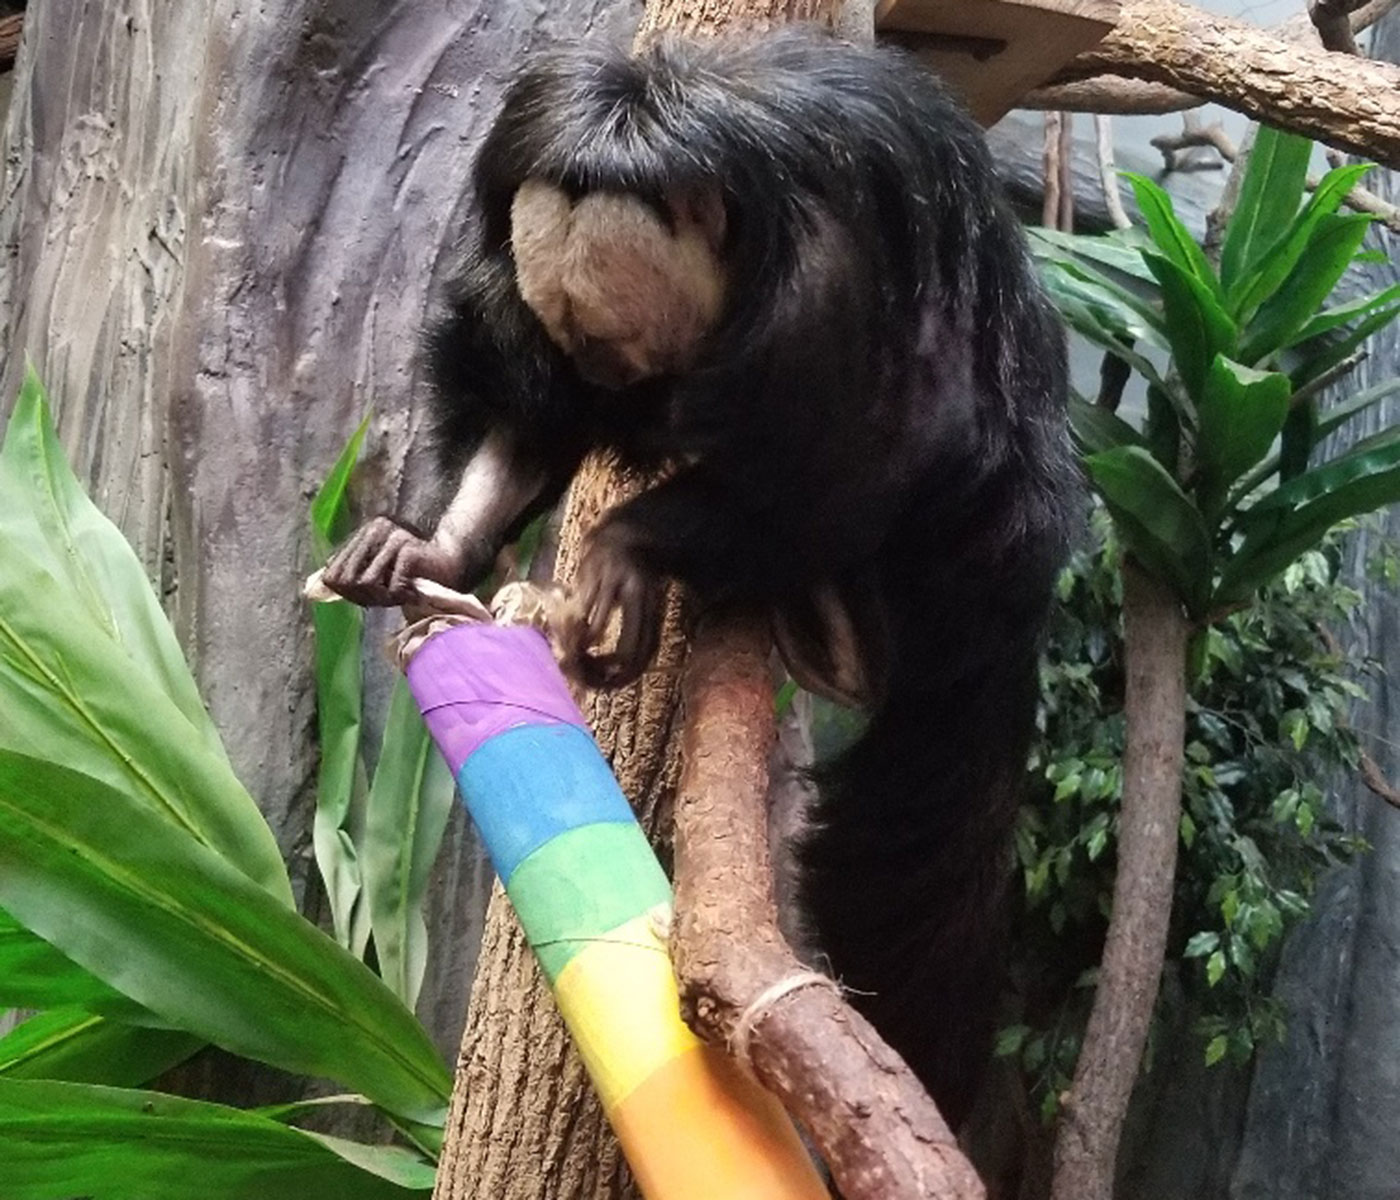 A saki monkey searches for treats inside a cardboard tube painted in rainbow colors